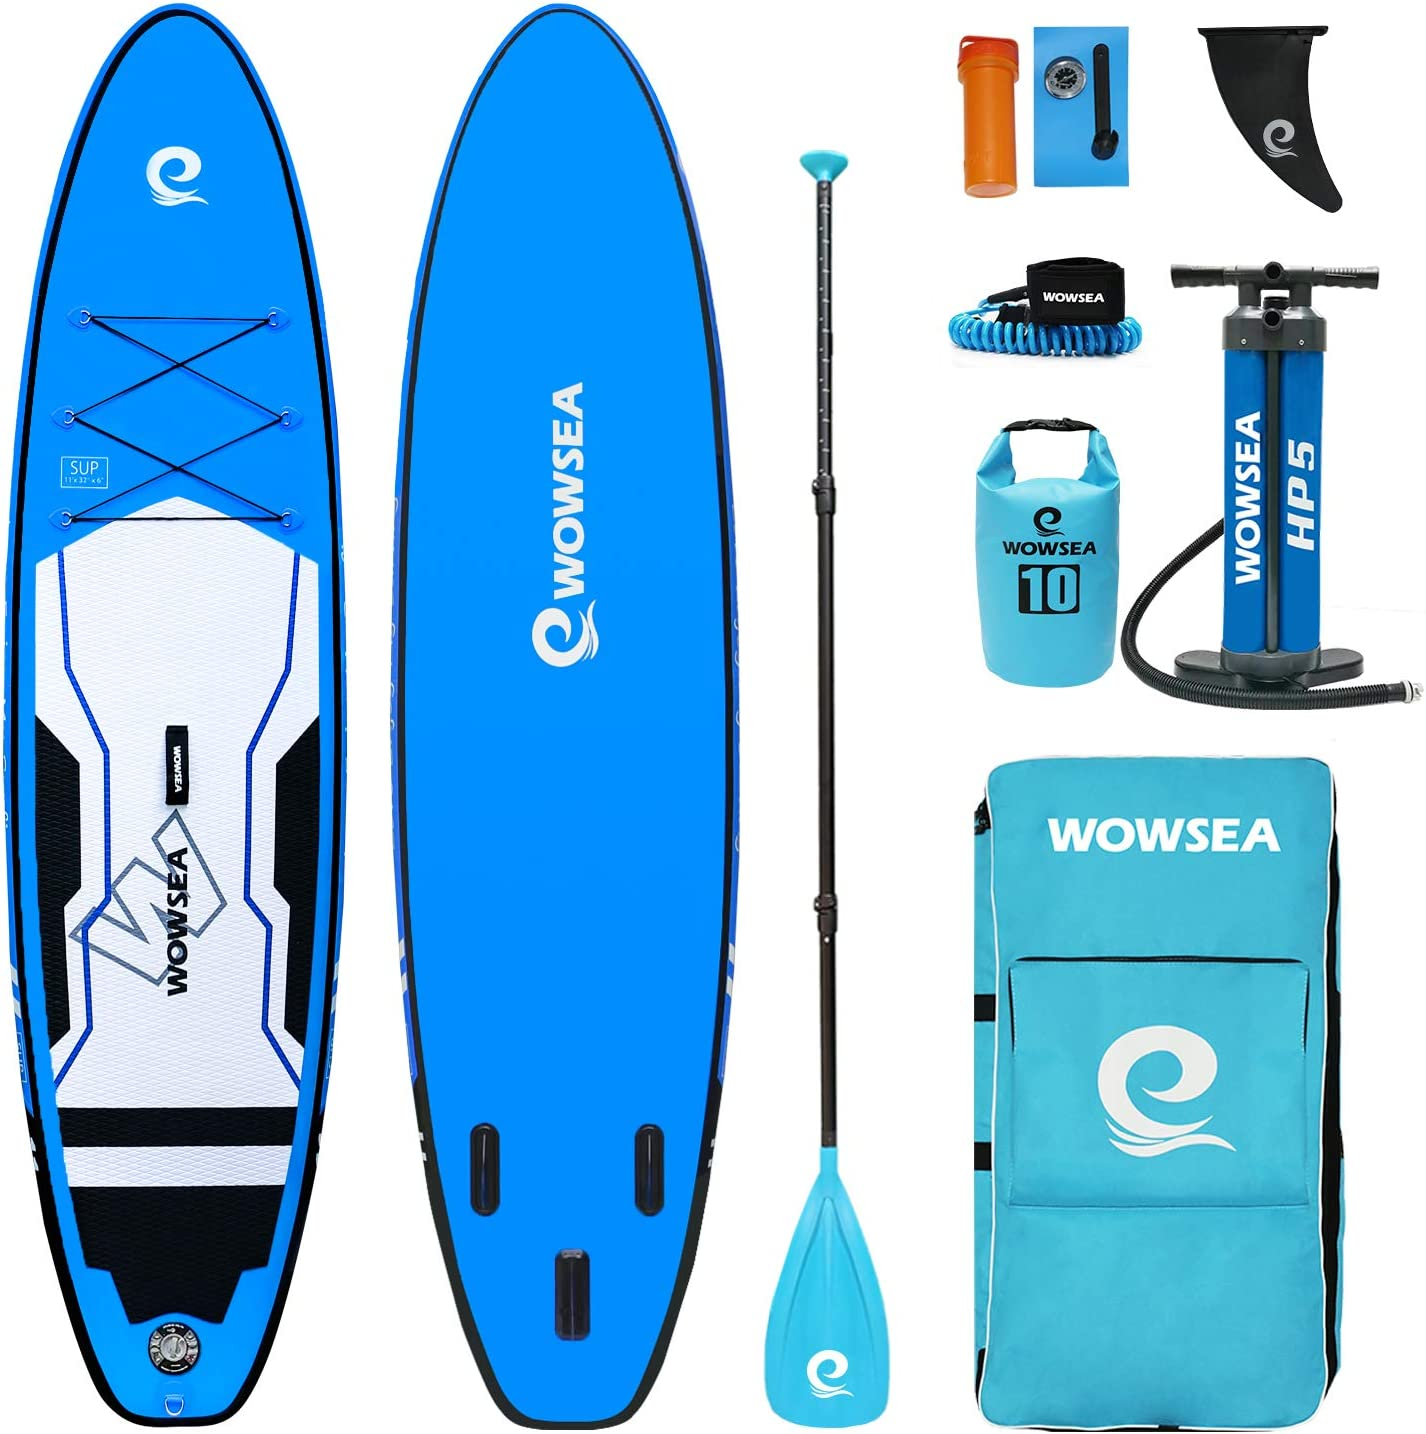 "WOWSEA Cruise Inflatable Stand Up Paddle Board | 11' Long x 32"" Wide x 6"" Thick 